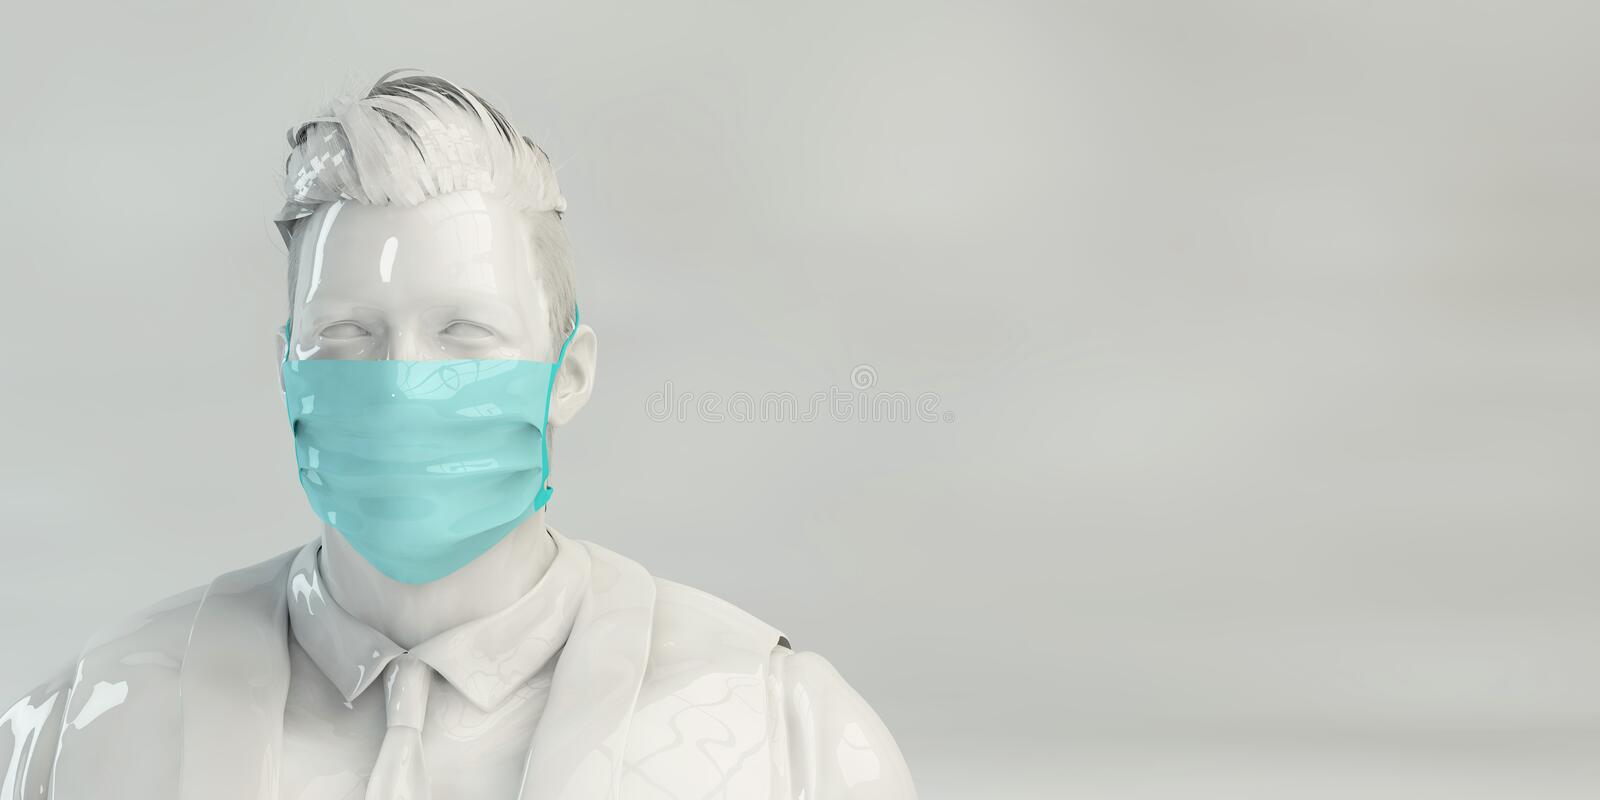 Wuhan Virus Copyspace Backdrop royalty free stock images